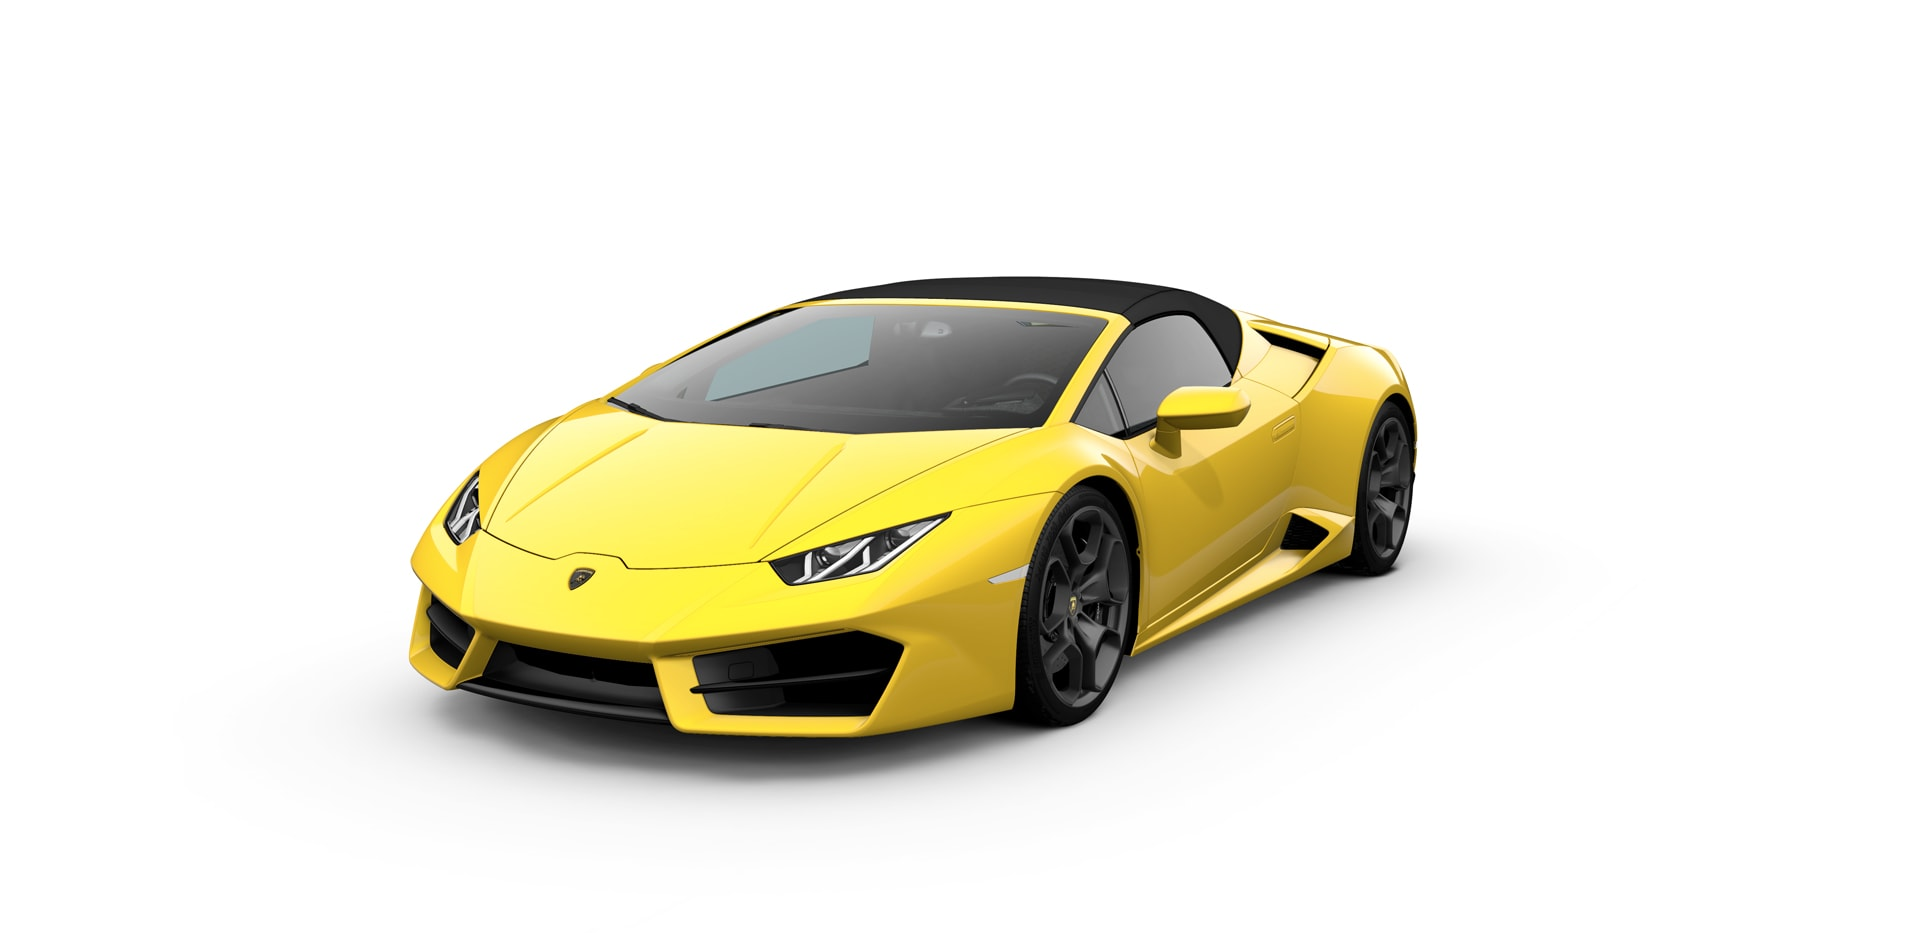 lamborghini hurac n rwd spyder technical specifications pictures videos. Black Bedroom Furniture Sets. Home Design Ideas